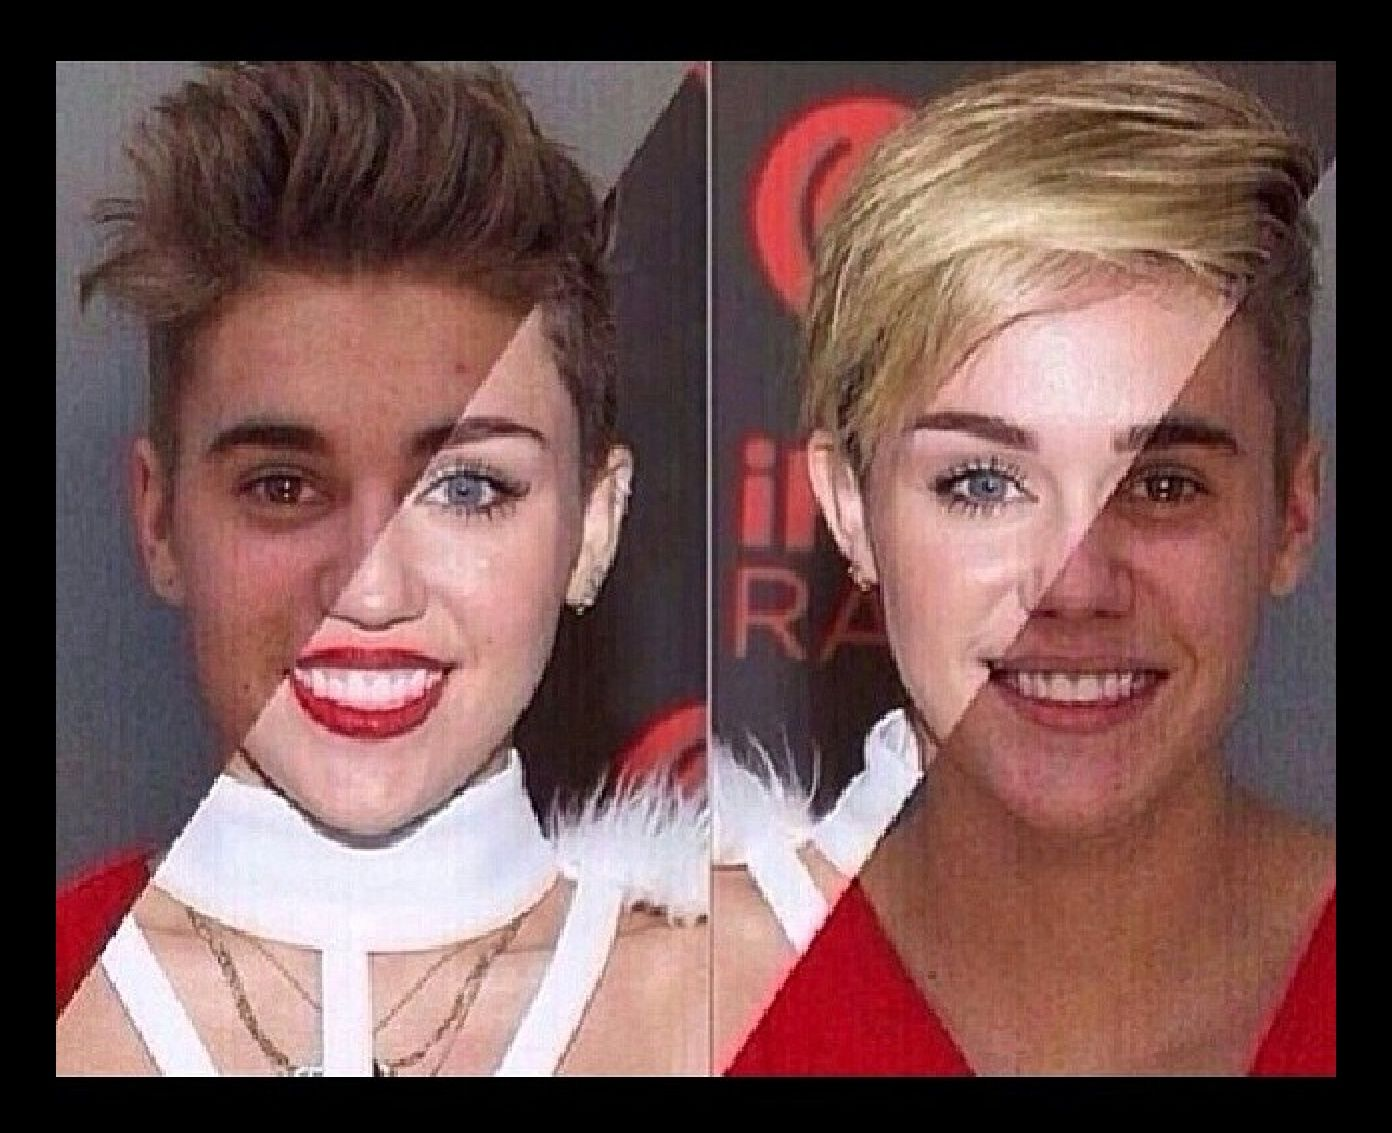 Justin and Miley